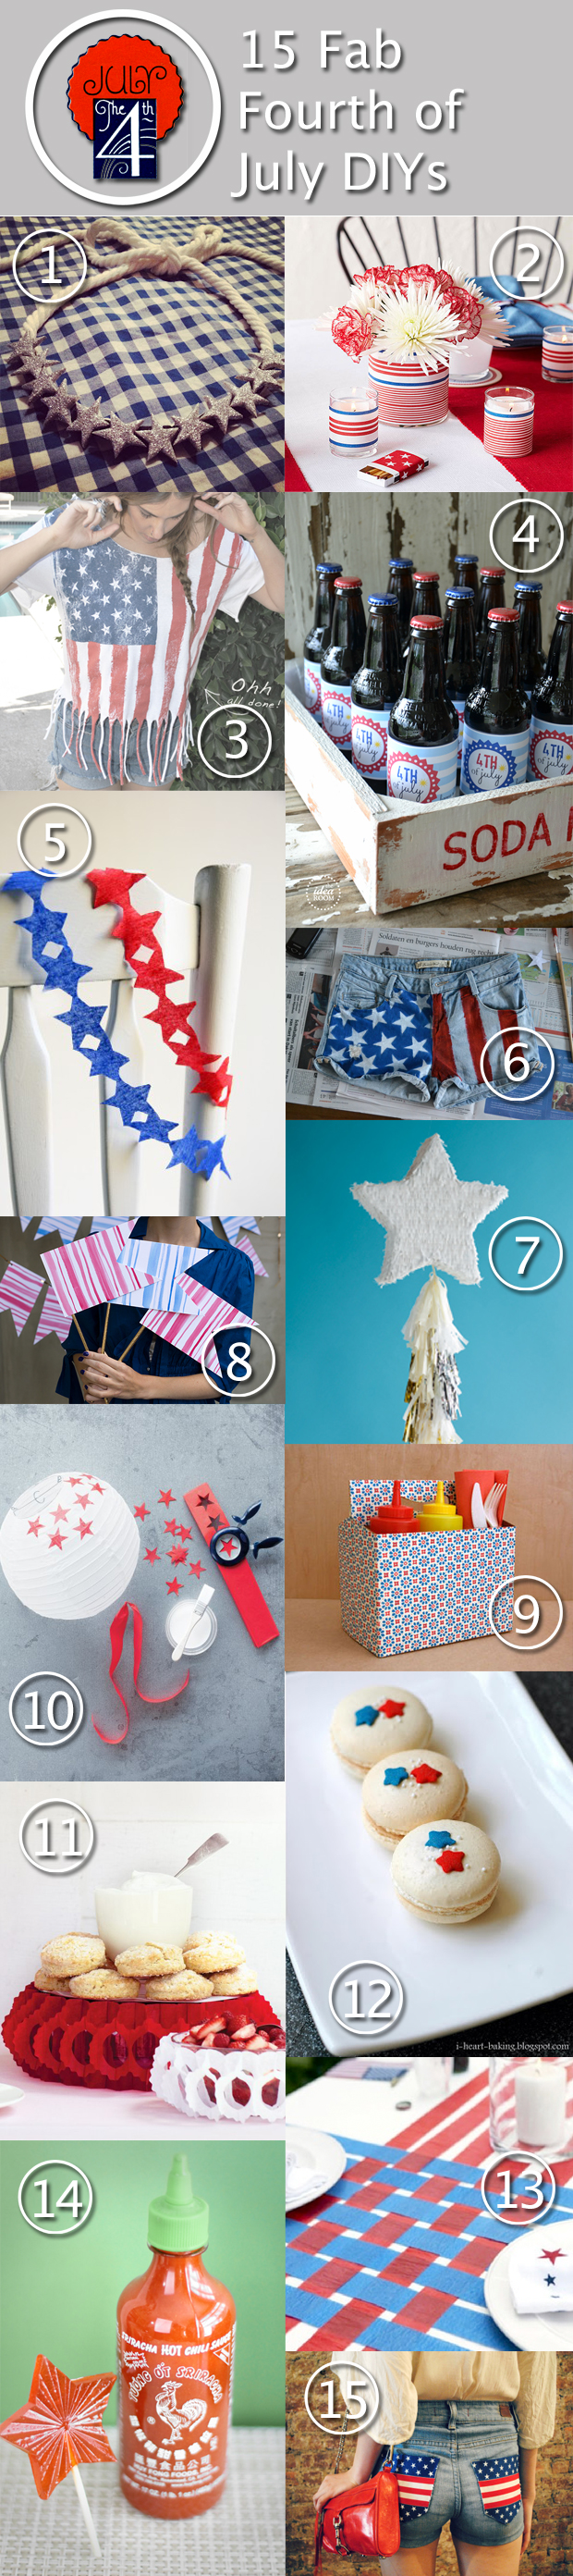 15 Fab Fourth of July DIYs - HandsOccupied.com